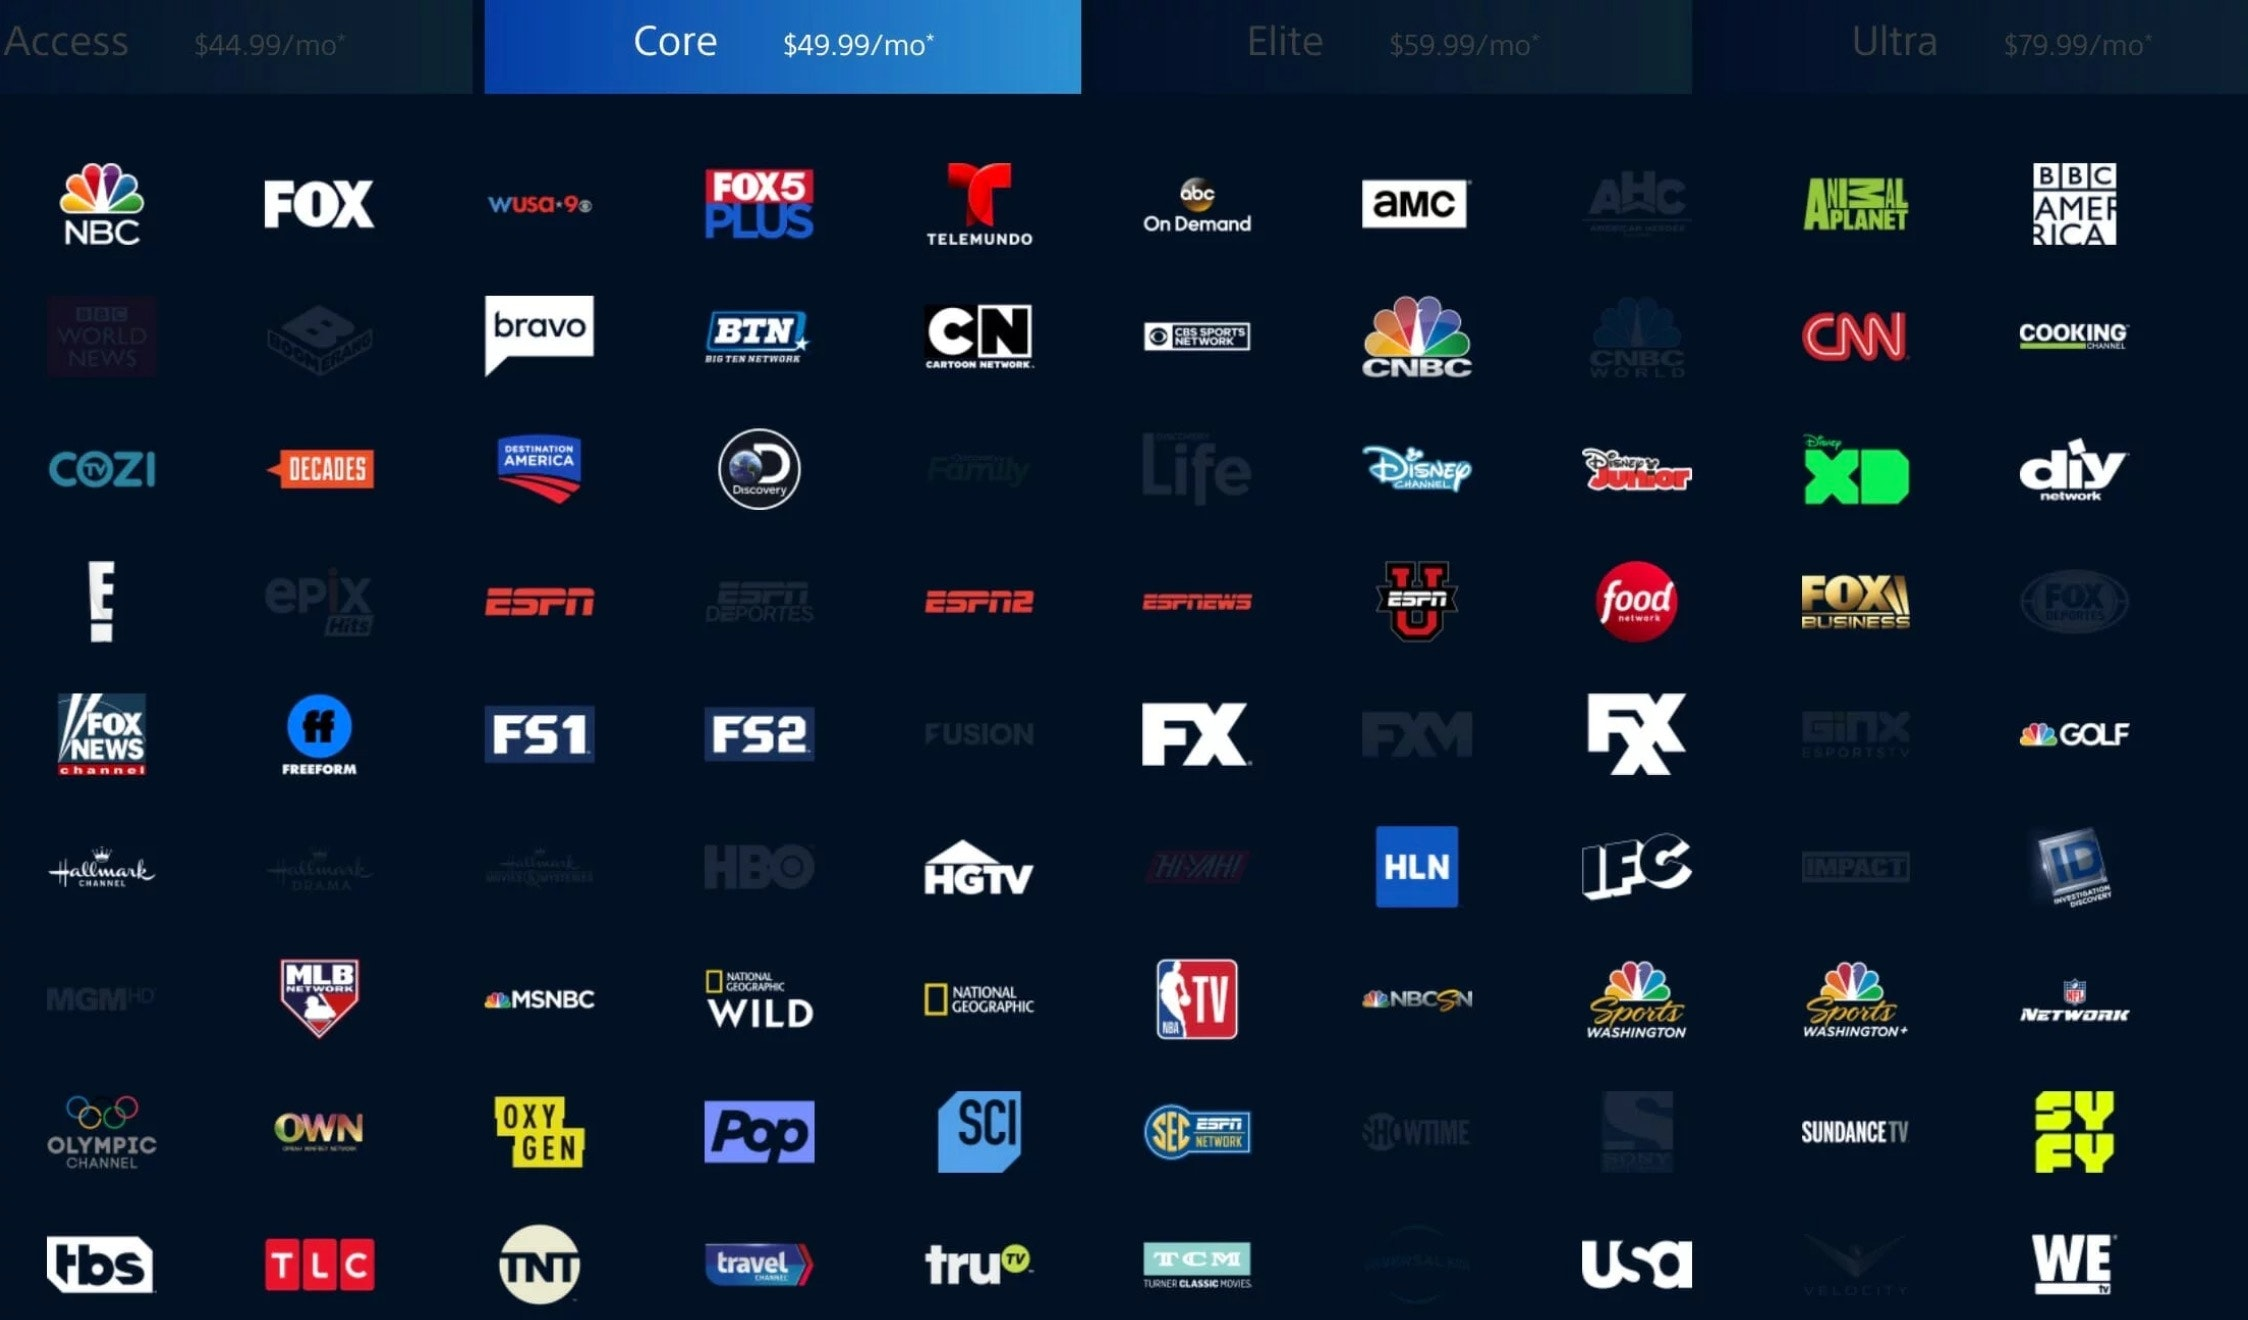 2019 mls all star game orlando atletico madrid soccer live stream free playstation vue core